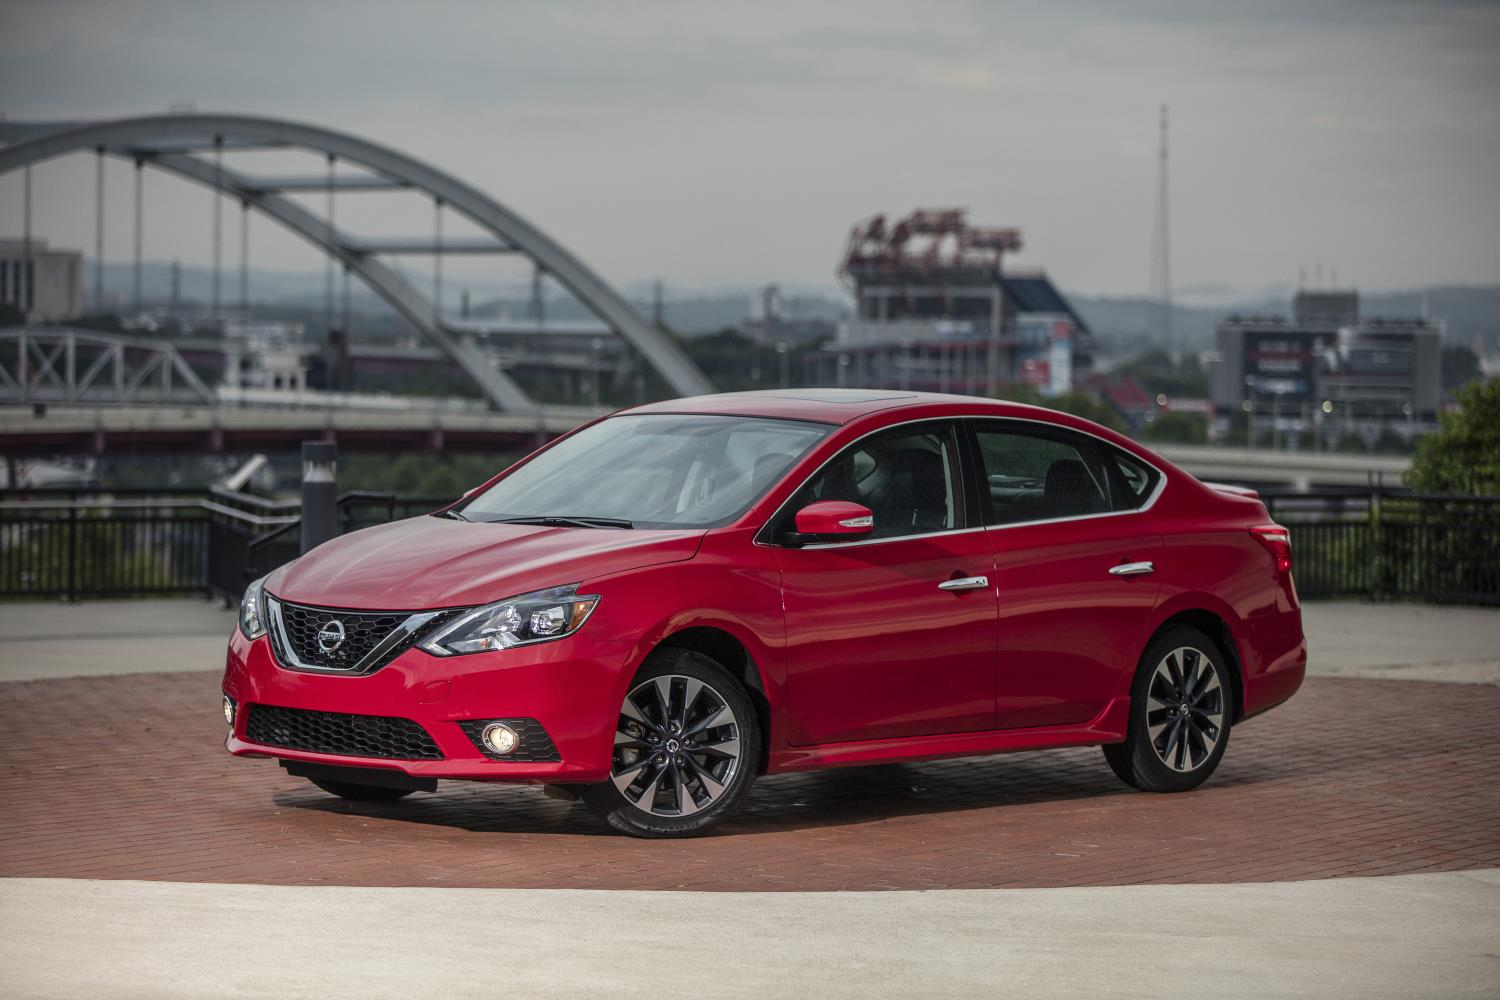 2017 nissan sentra price starts from 16 990 sentra sr turbo from 21 990 autoevolution